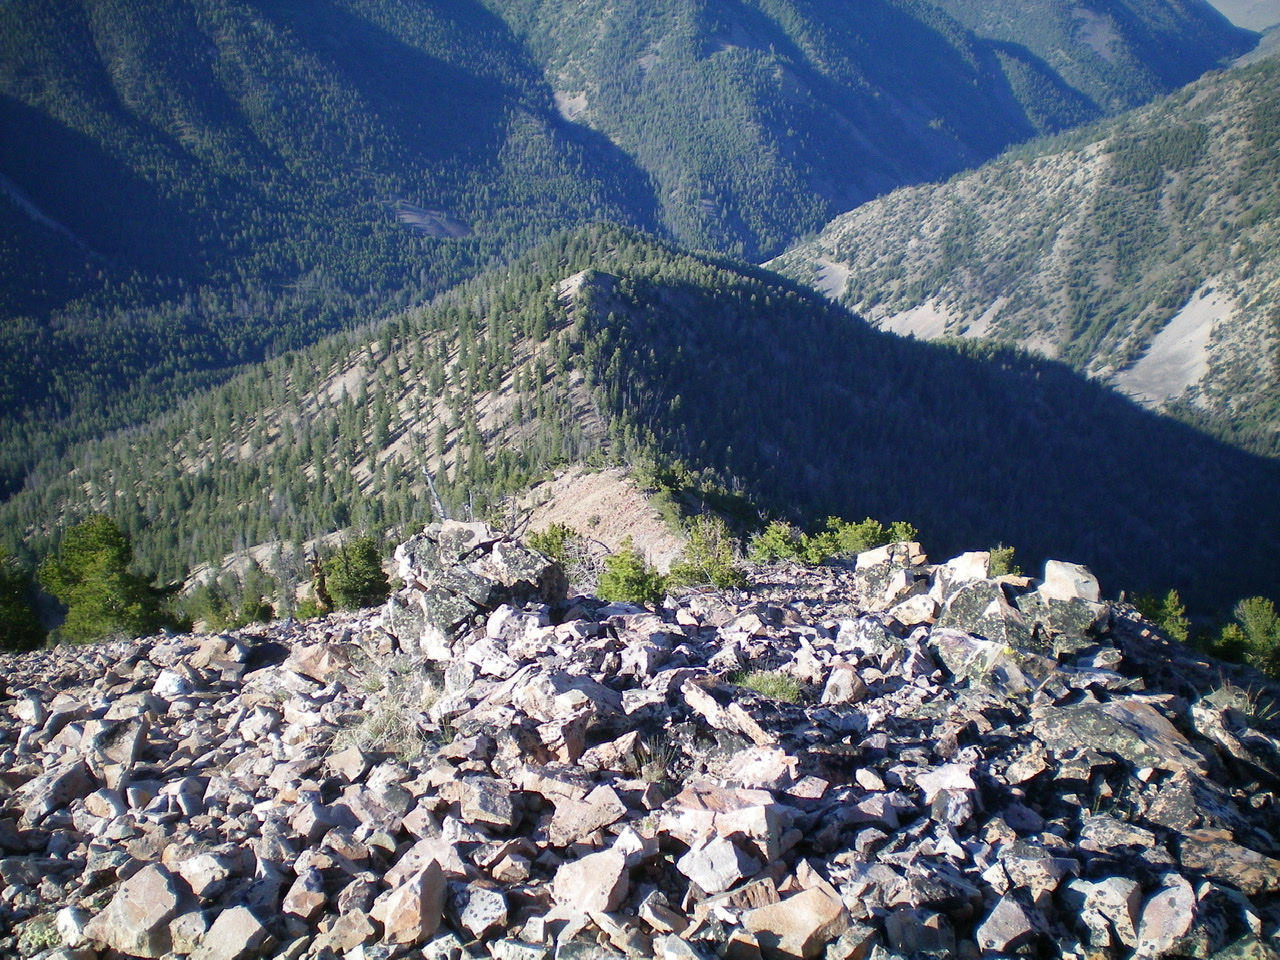 Looking down the South Ridge from the summit of Peak 9785. Livingston Douglas Photo